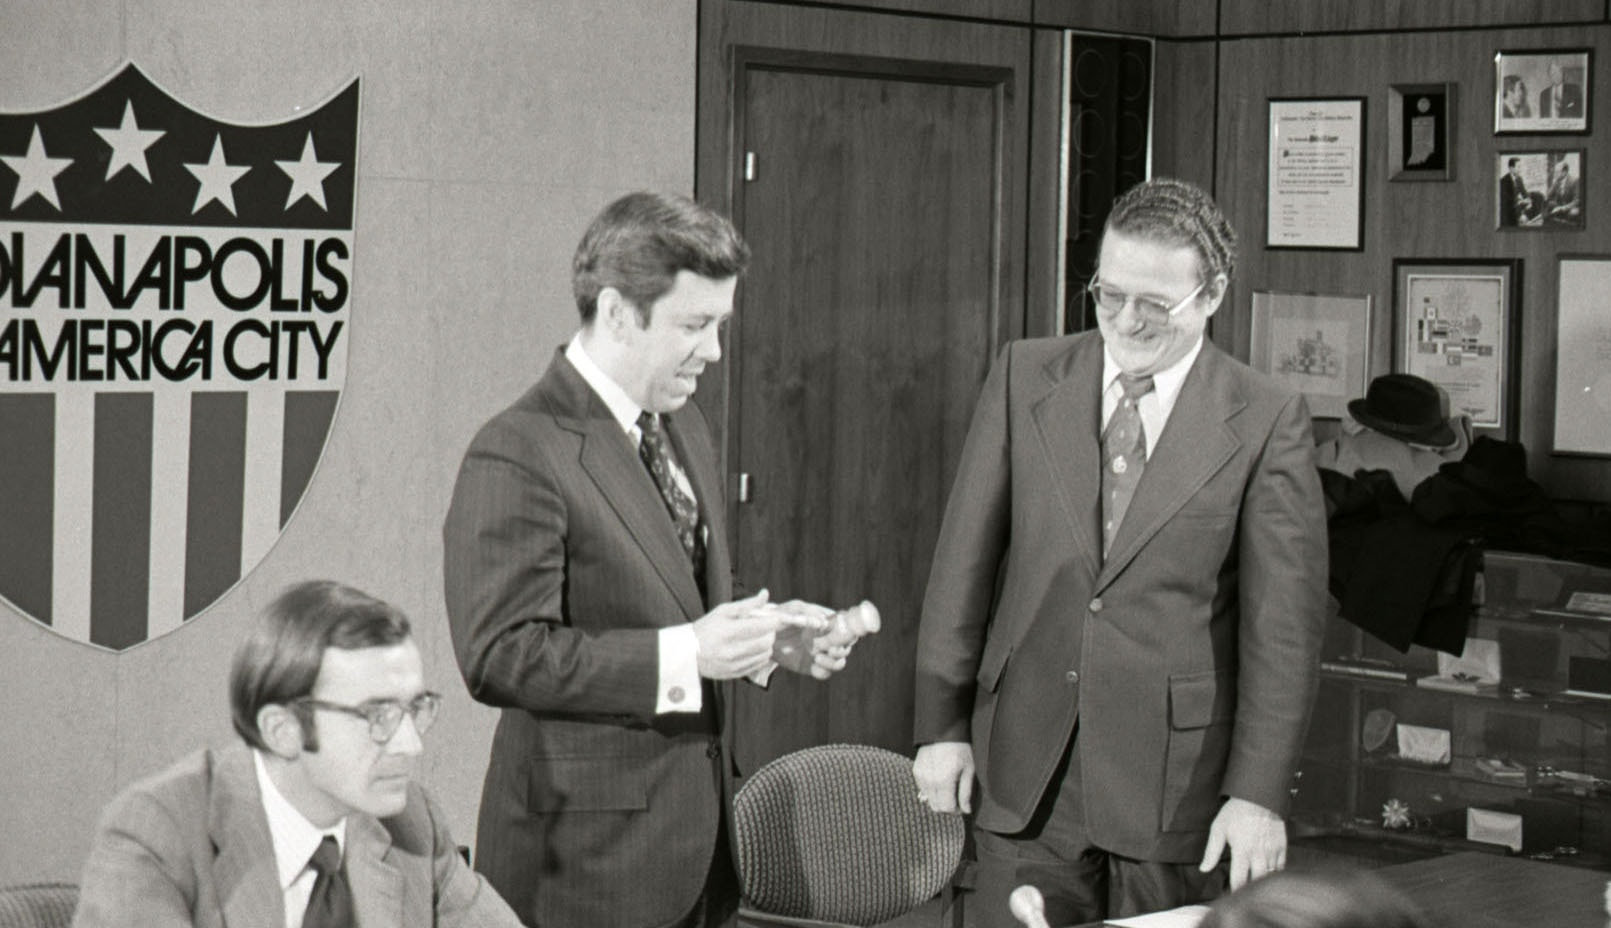 In 1975, then Indianapolis Mayor Richard Lugar presents a ceremonial gavel to University of Indianapolis president Gene E. Sease. Photo courtesy of the University of Indianapolis.